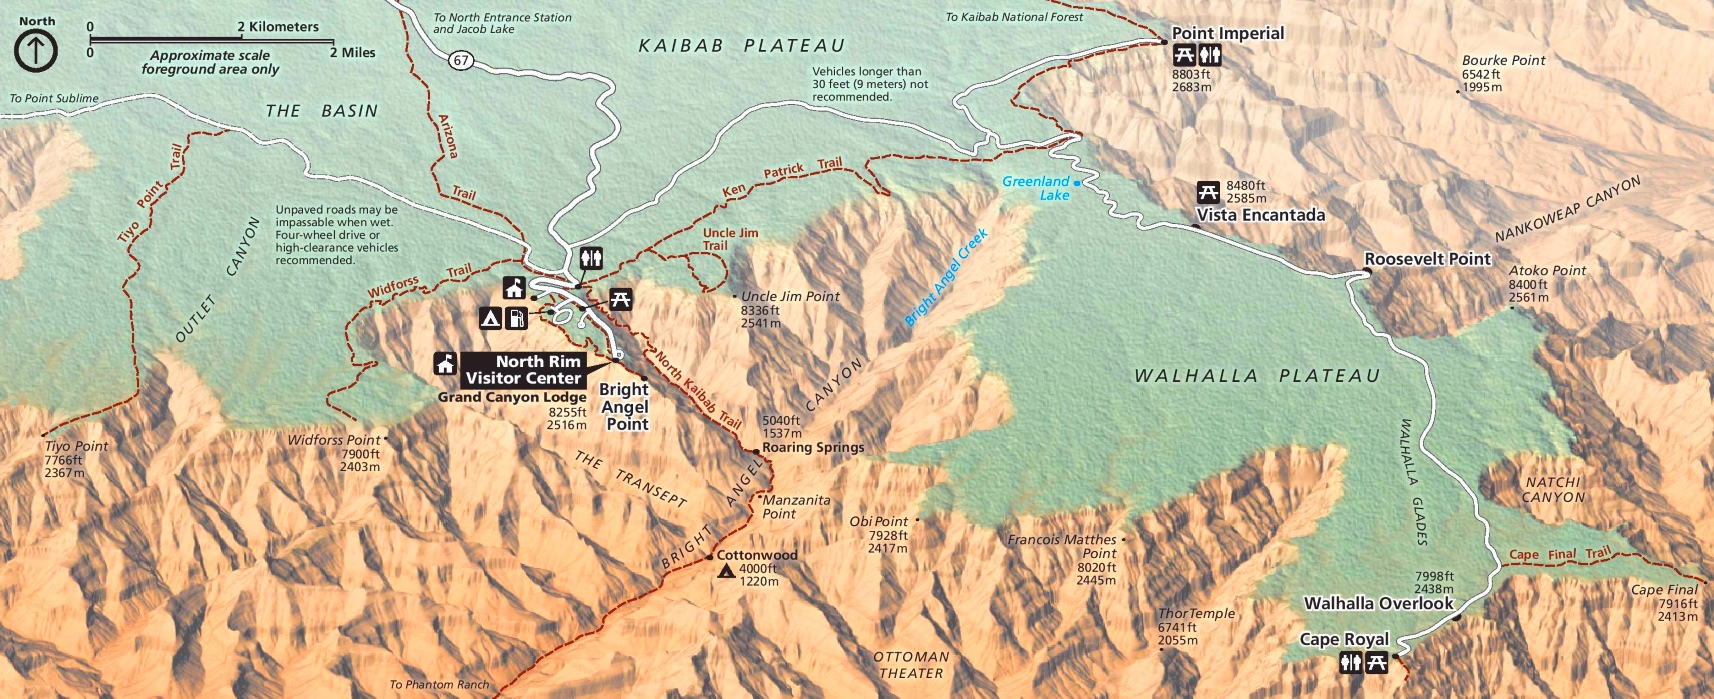 Detailed map of Grand Canyon North Rim